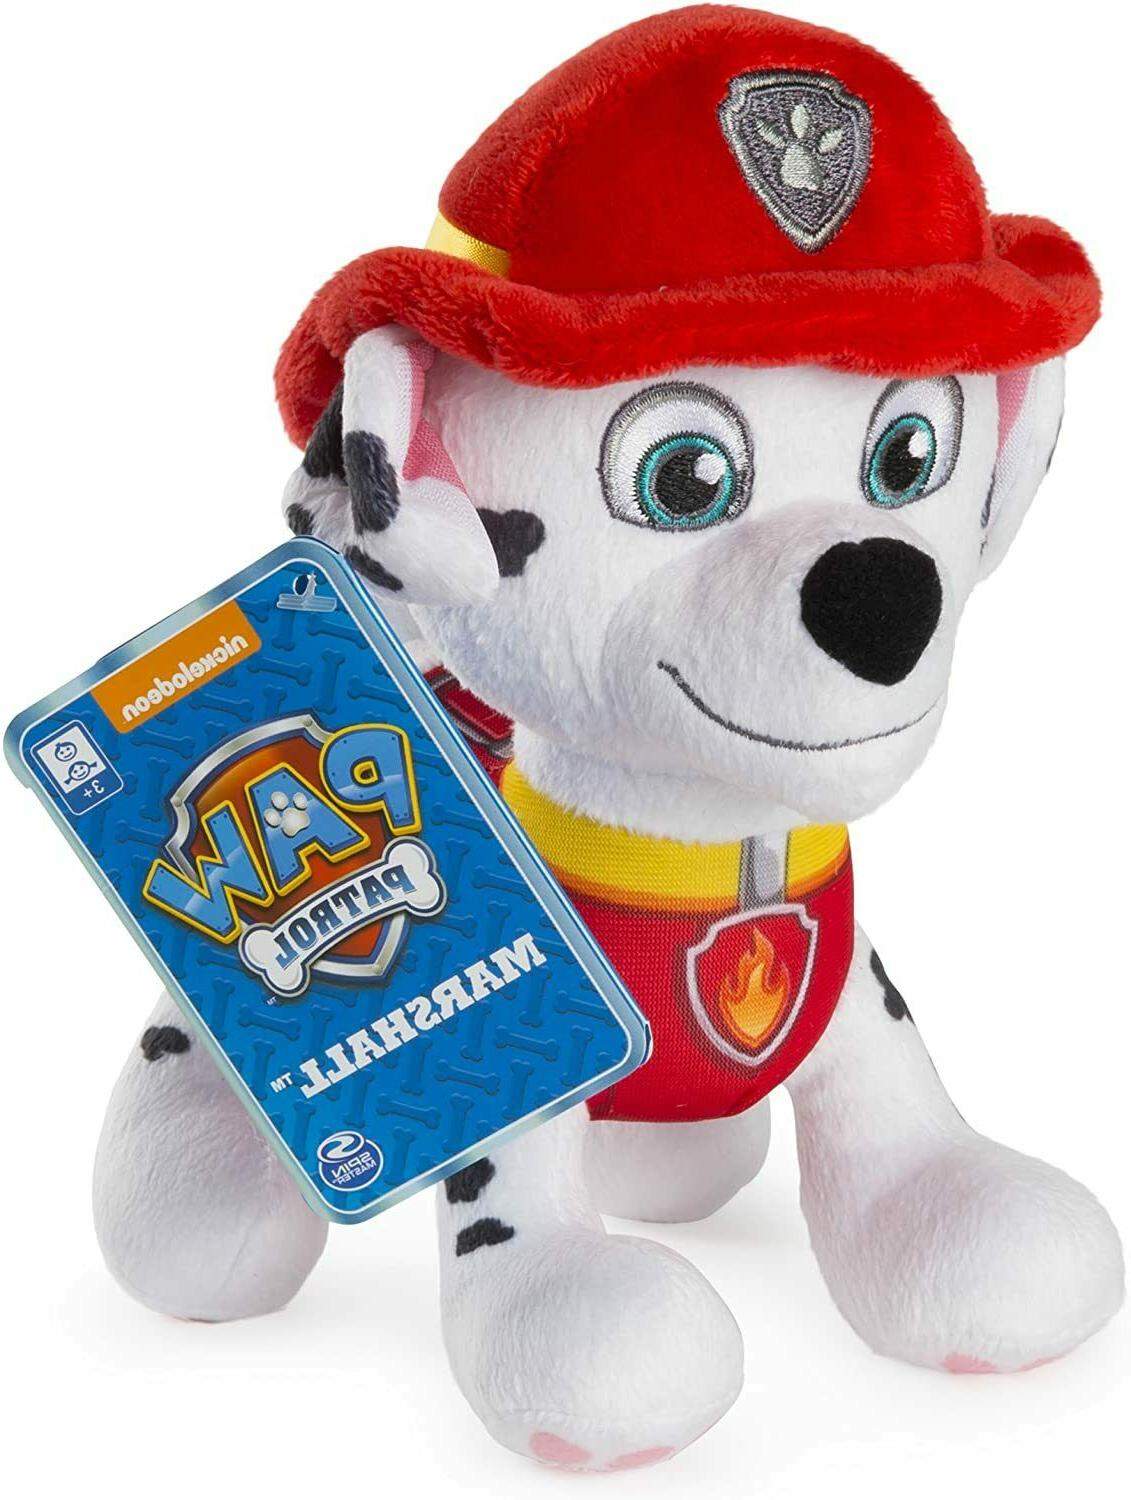 Paw Patrol – Marshall Plush Toy, Plush with Stitched for